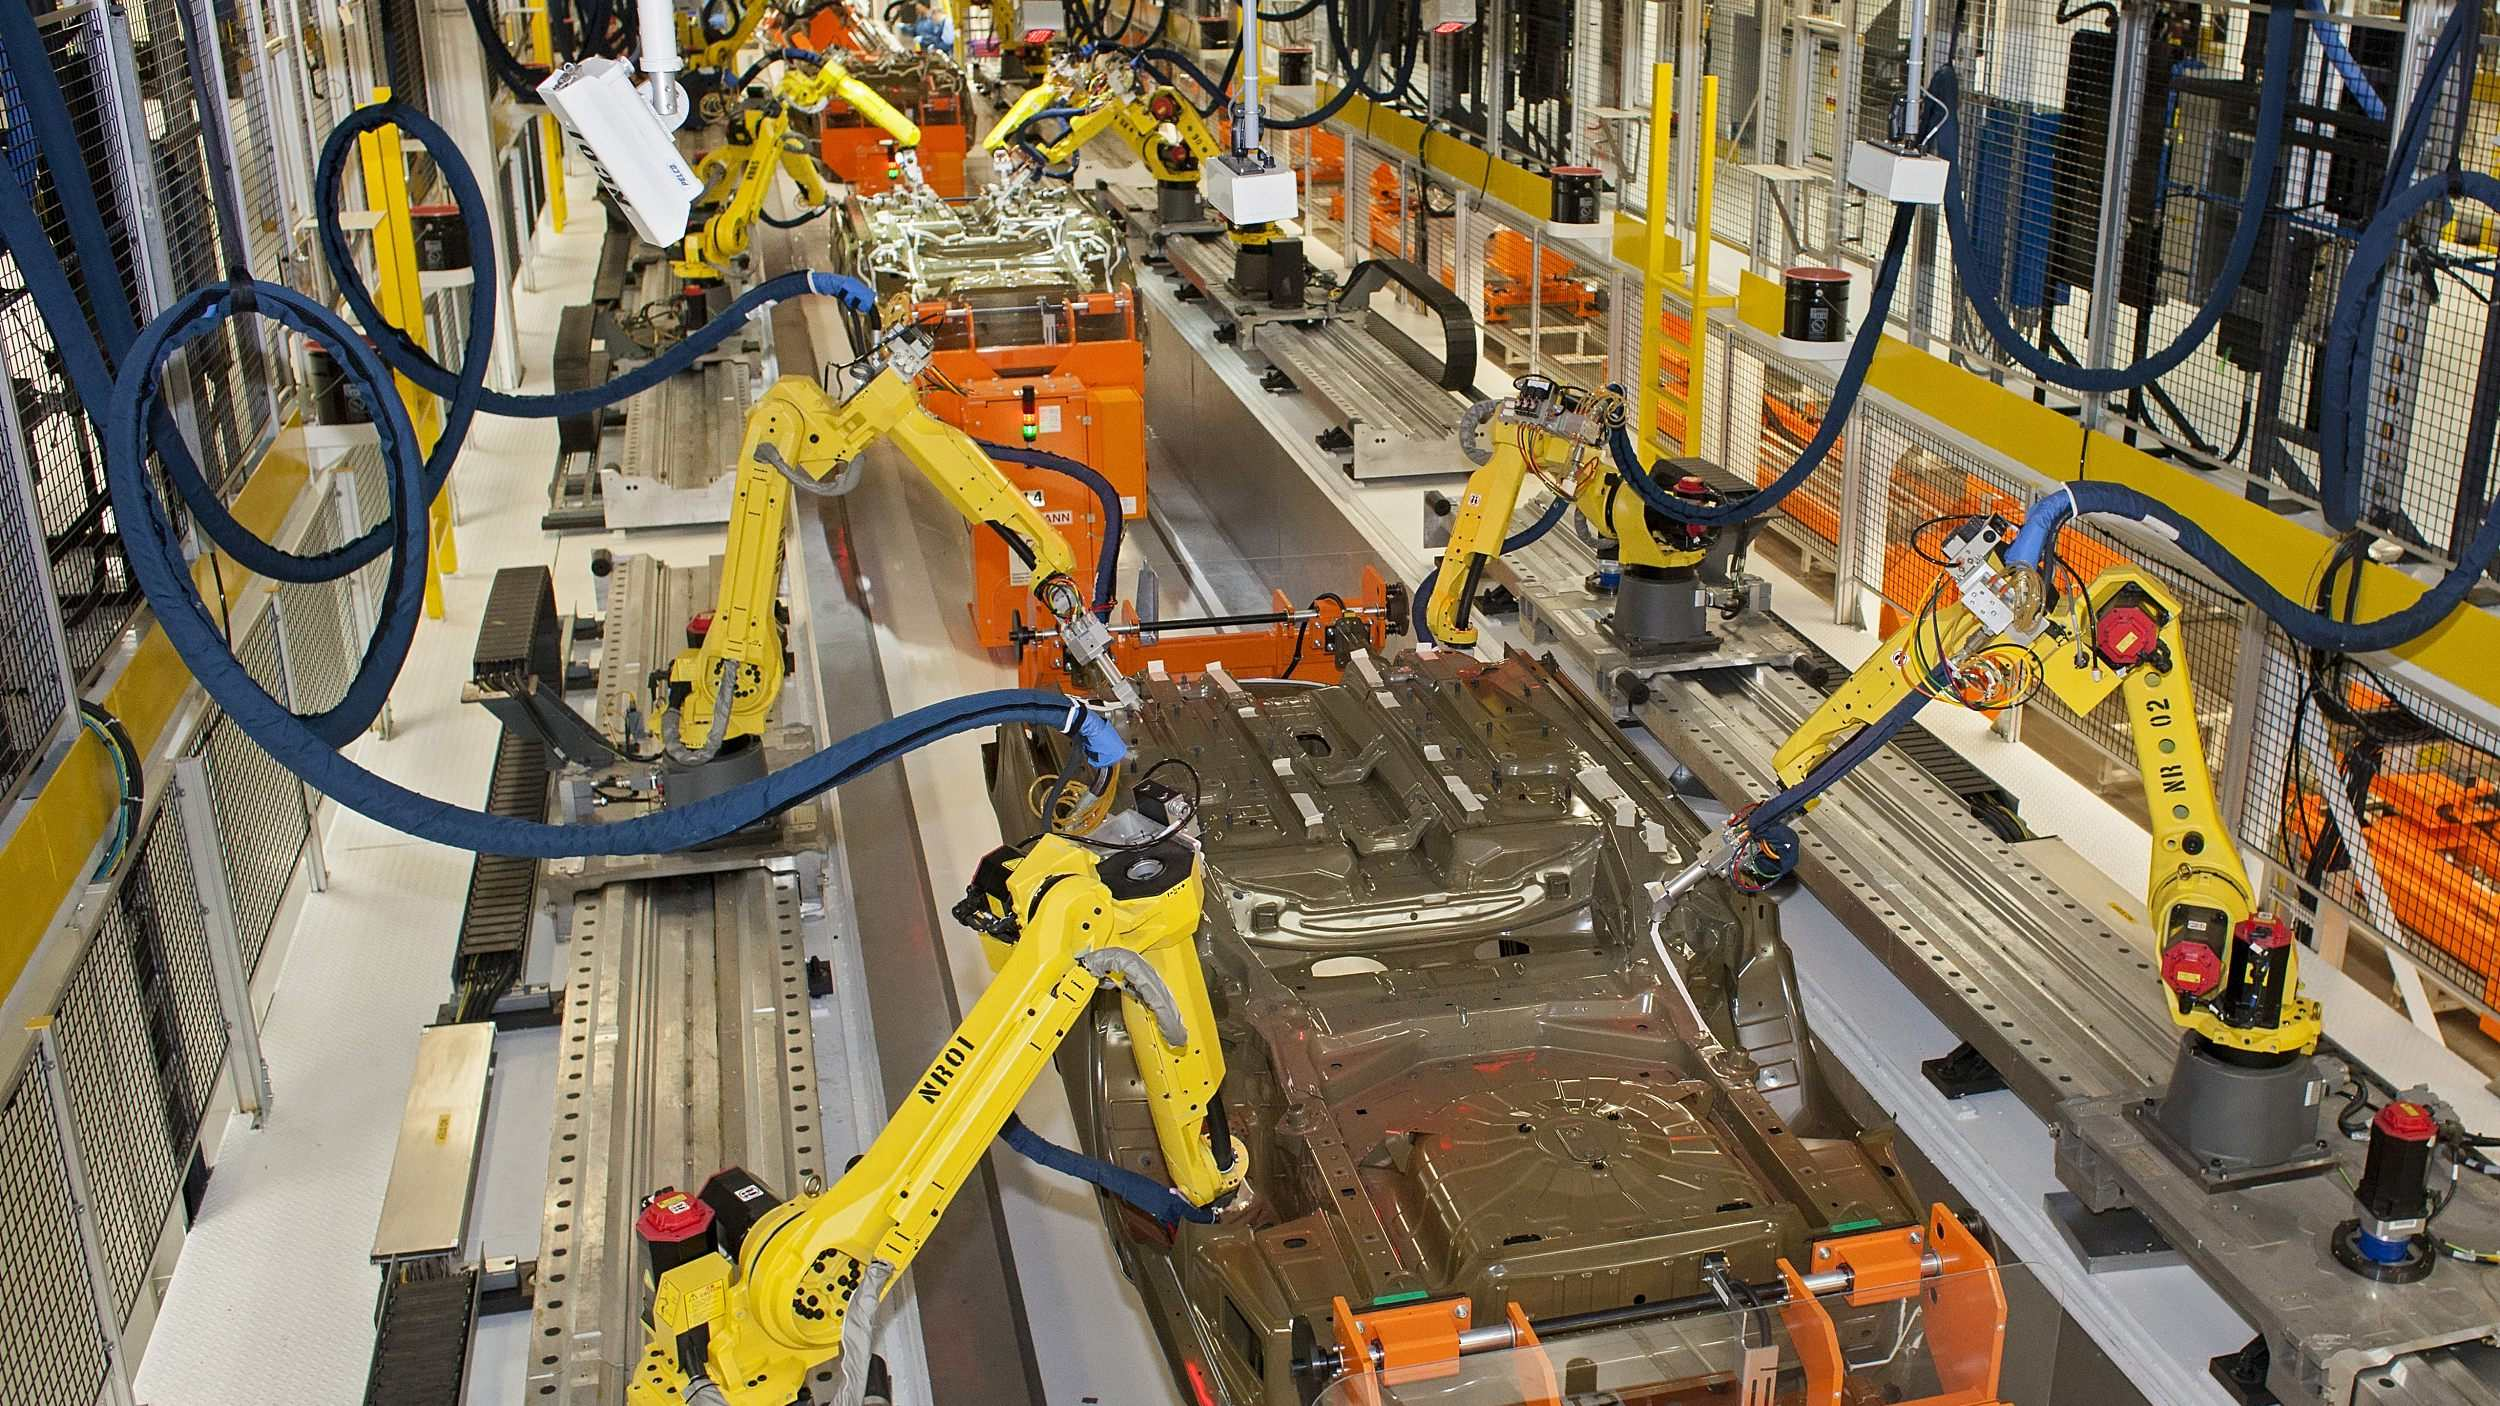 China's high-tech manufacturing industry sees rapid growth in Aug.